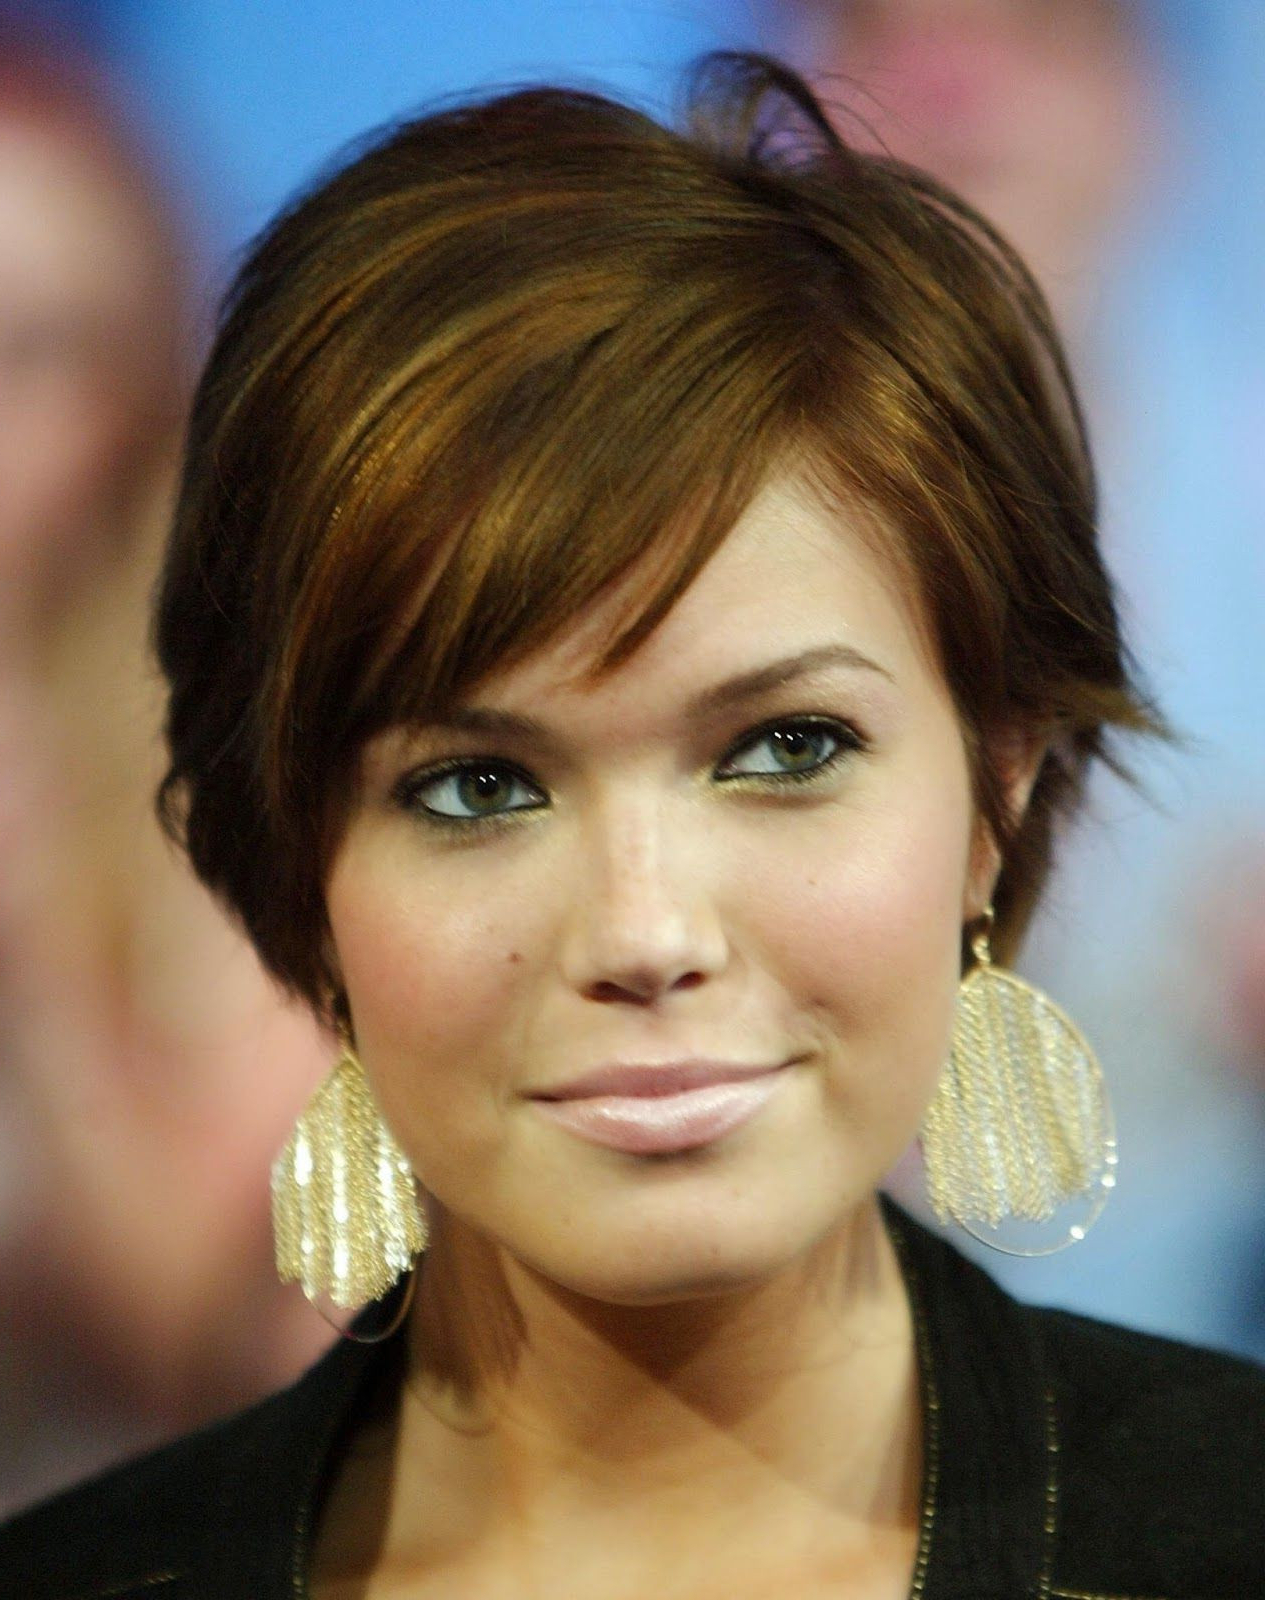 47 Inspirational Hairstyles For Fat Faces And Double Chins Within Short Hairstyles For Fat Faces And Double Chins (View 24 of 25)